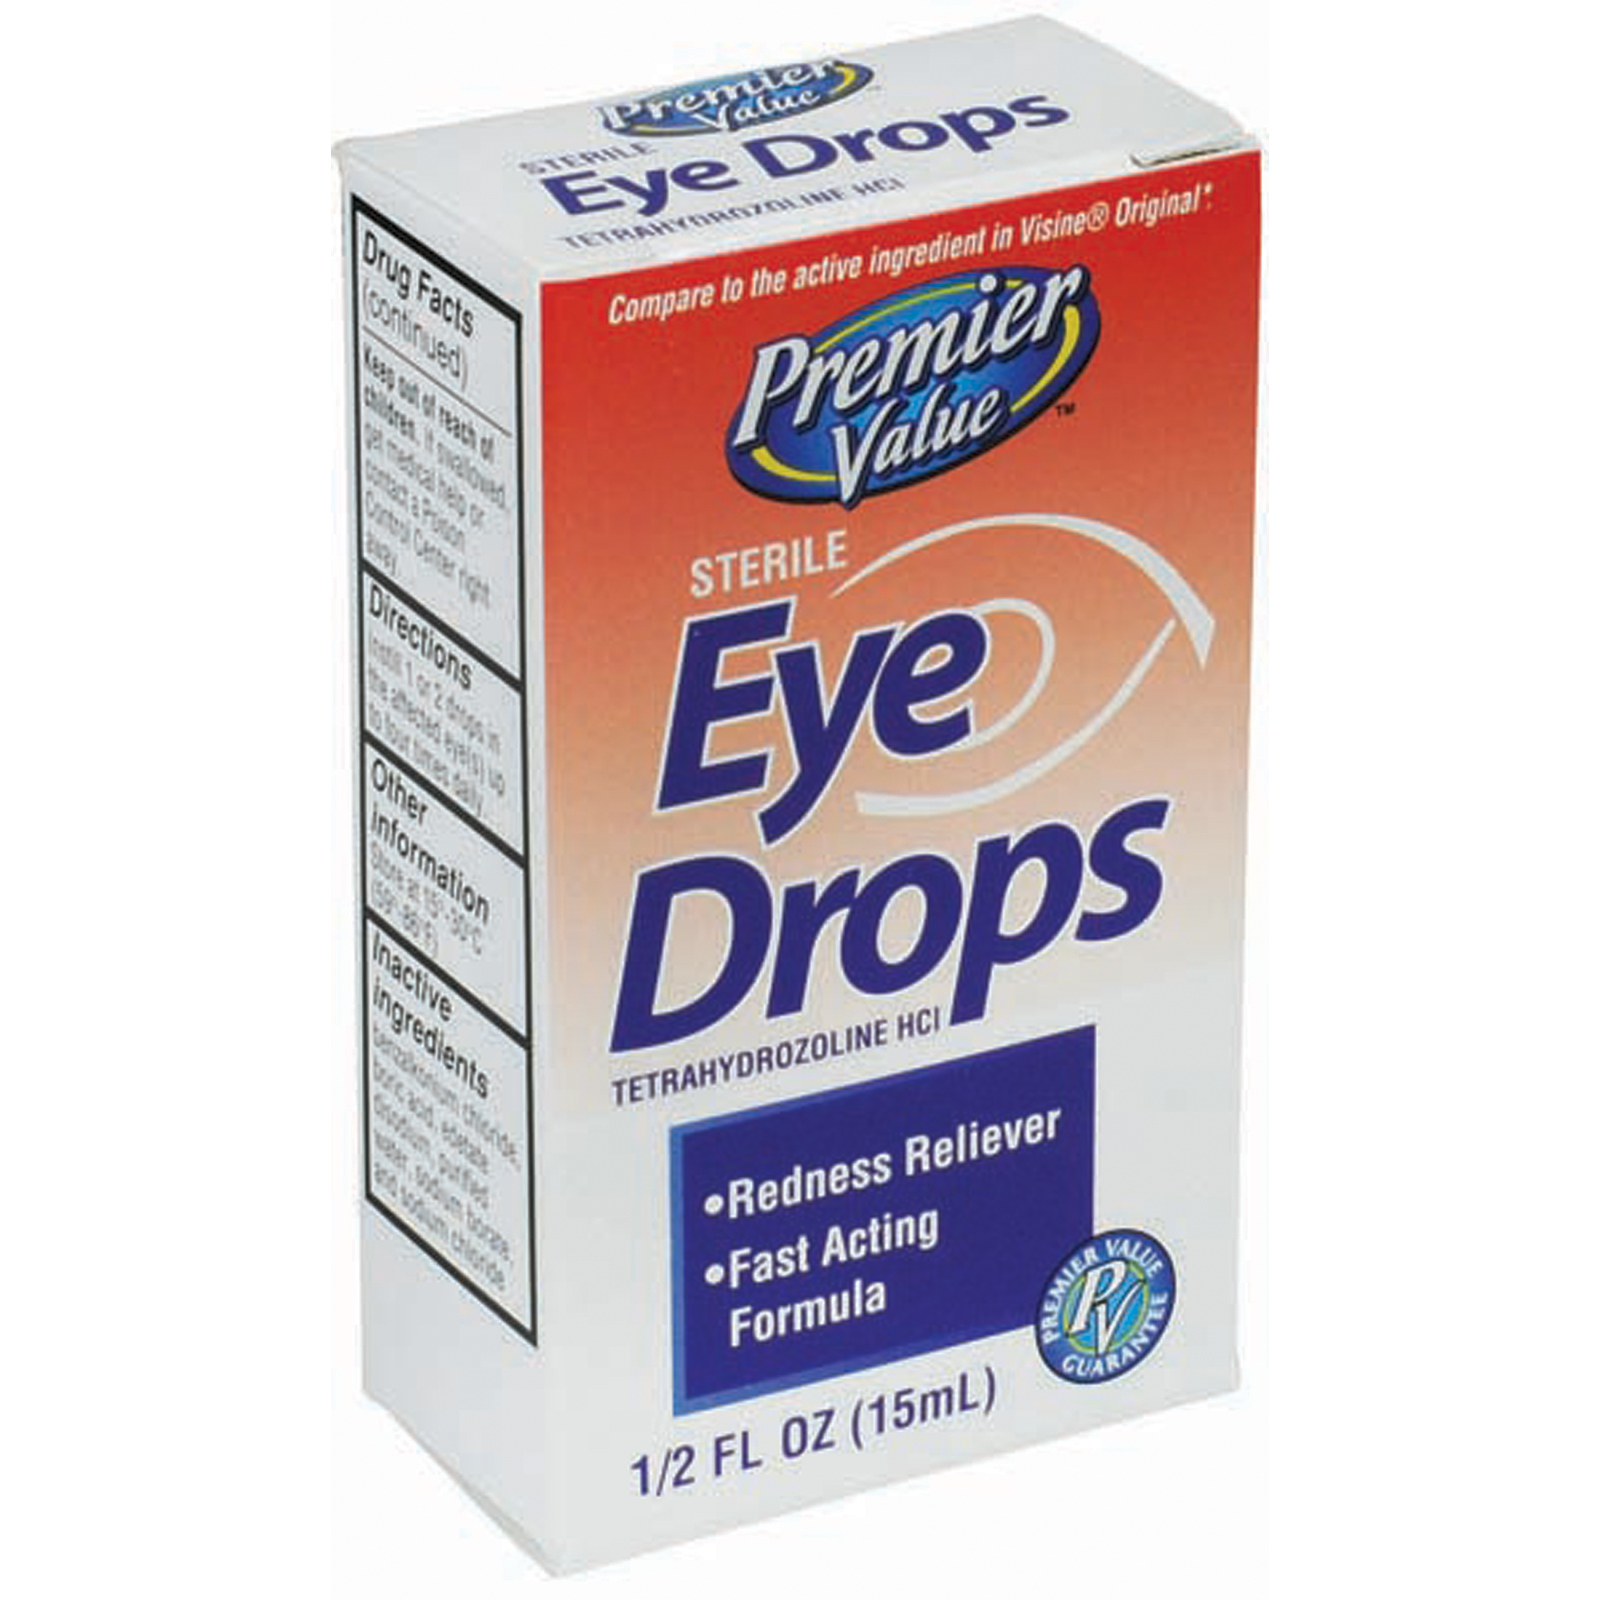 Premier Value Eye Drops Regular - 15ml